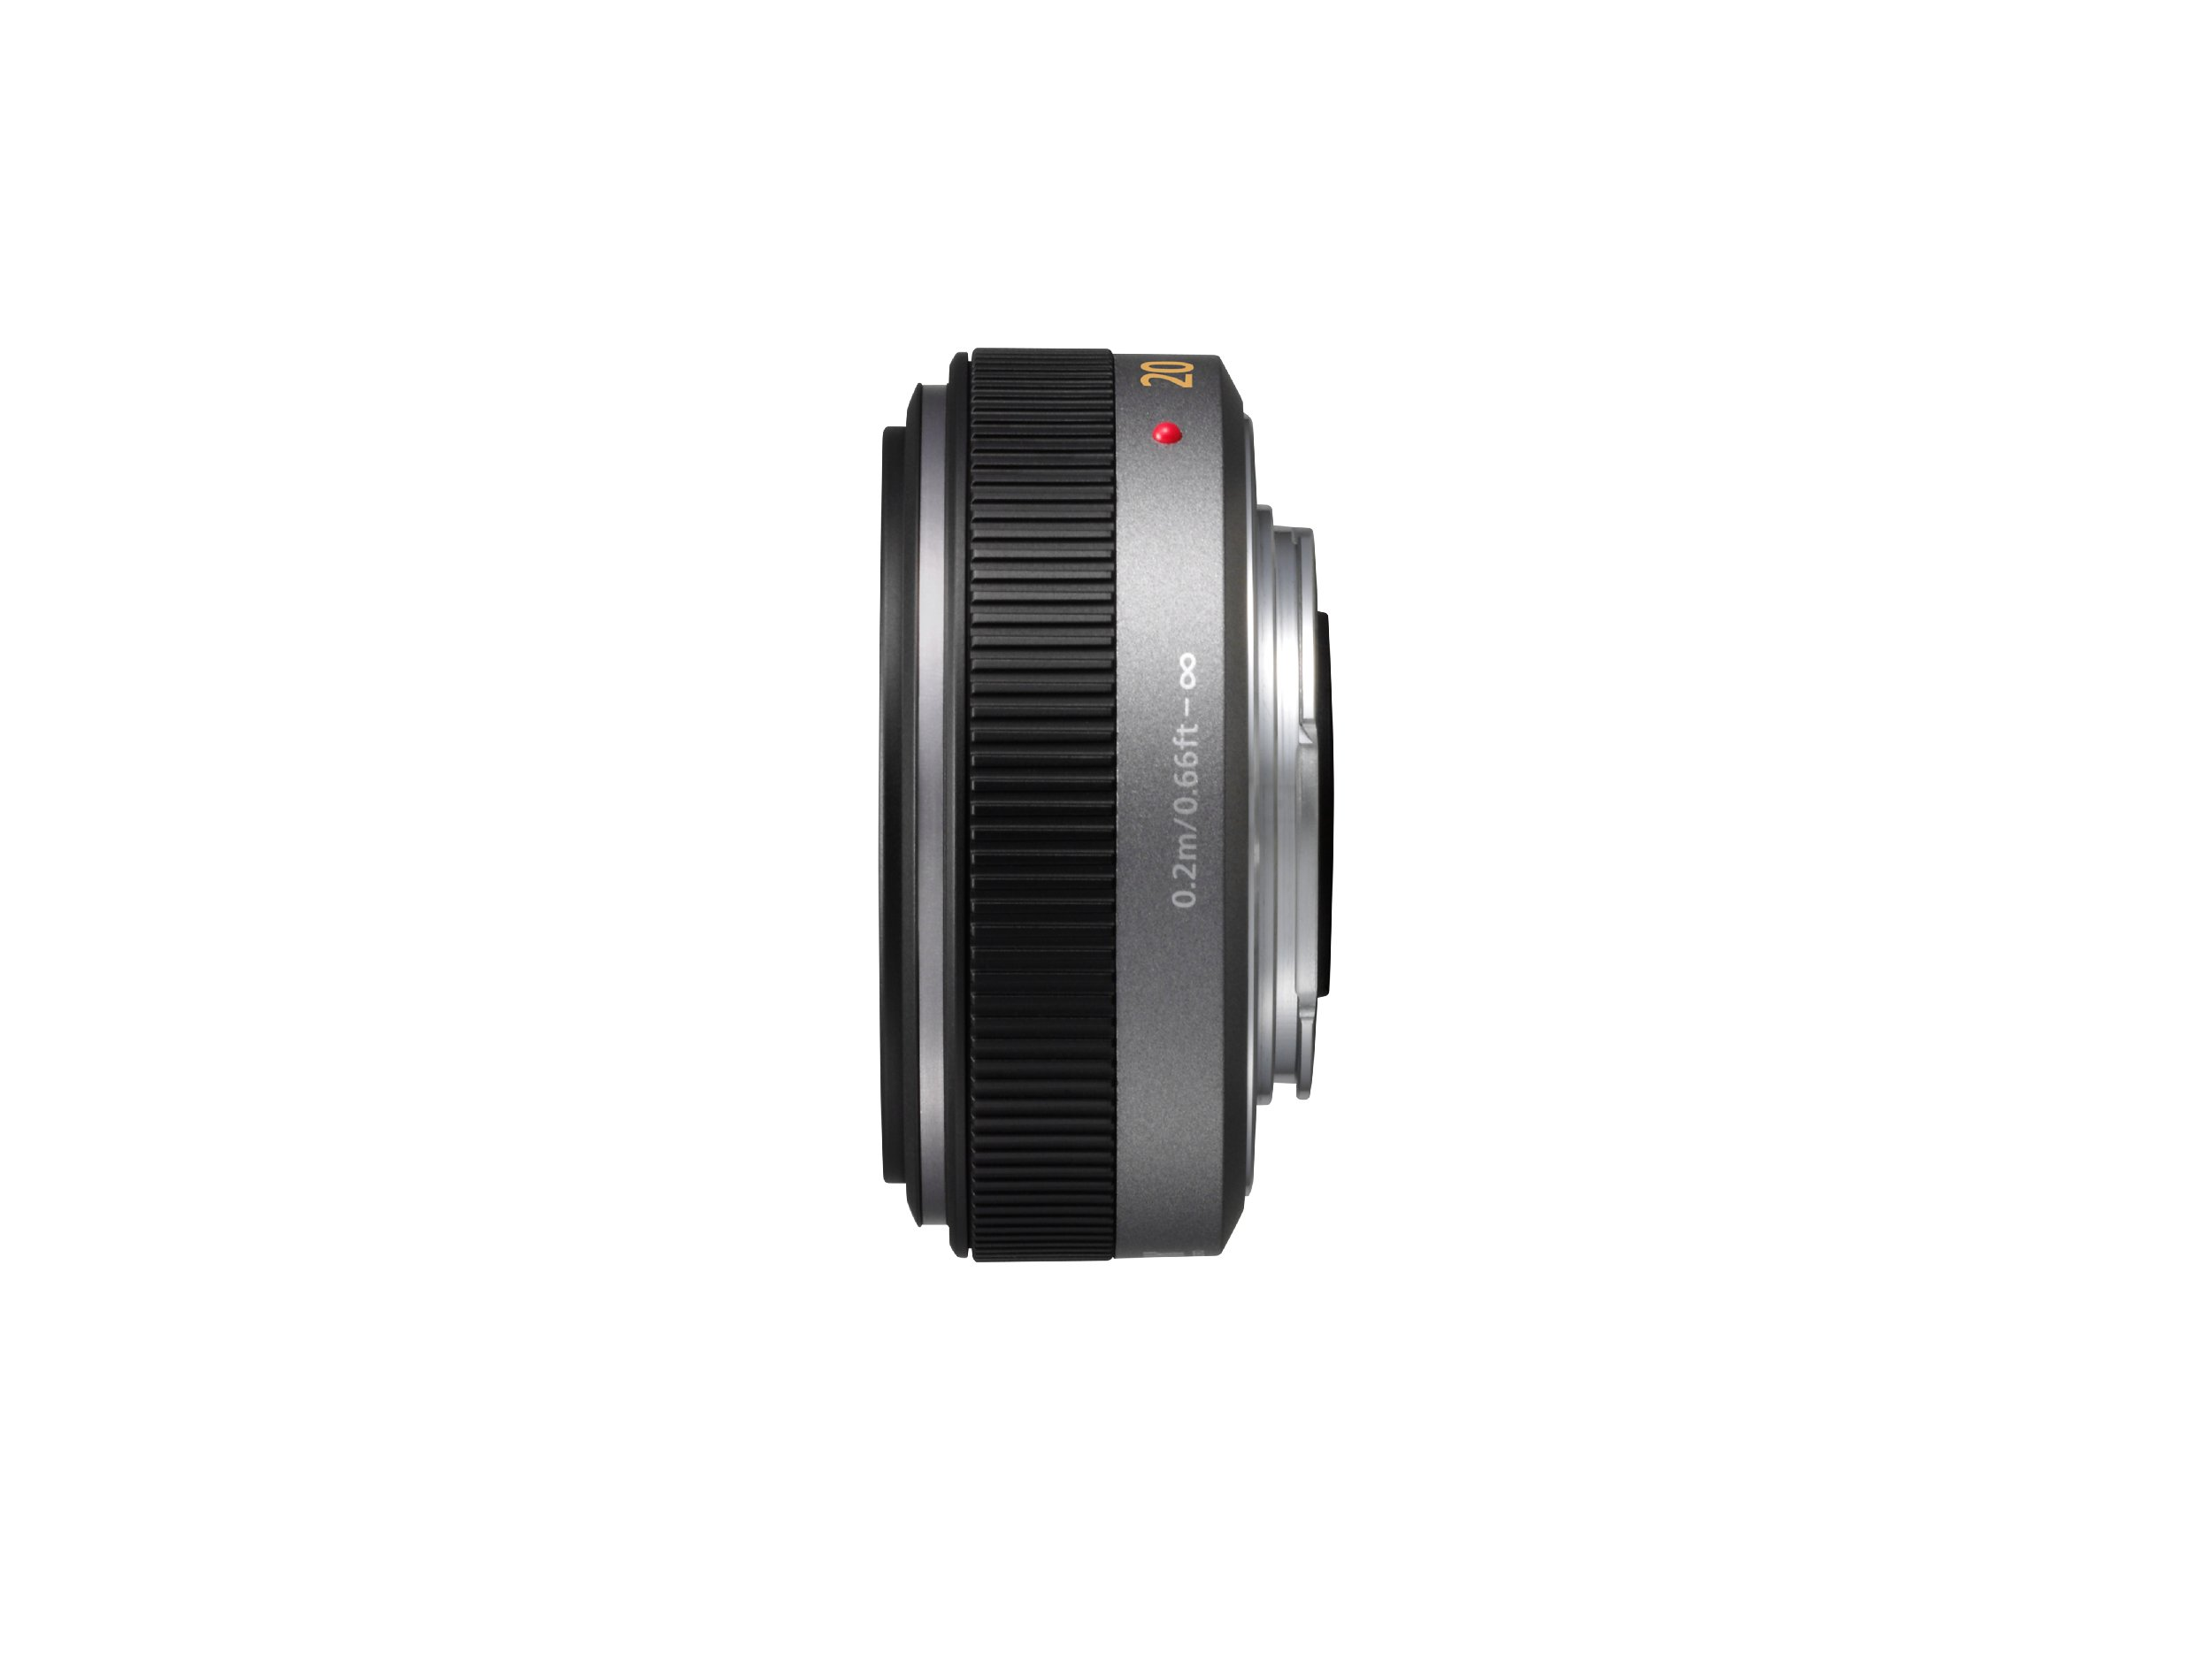 Panasonic Lumix G H-H020 20mm f/1.7 Aspherical Pancake Lens for Micro Four Thirds Interchangeable  Digital SLR Cameras by Panasonic